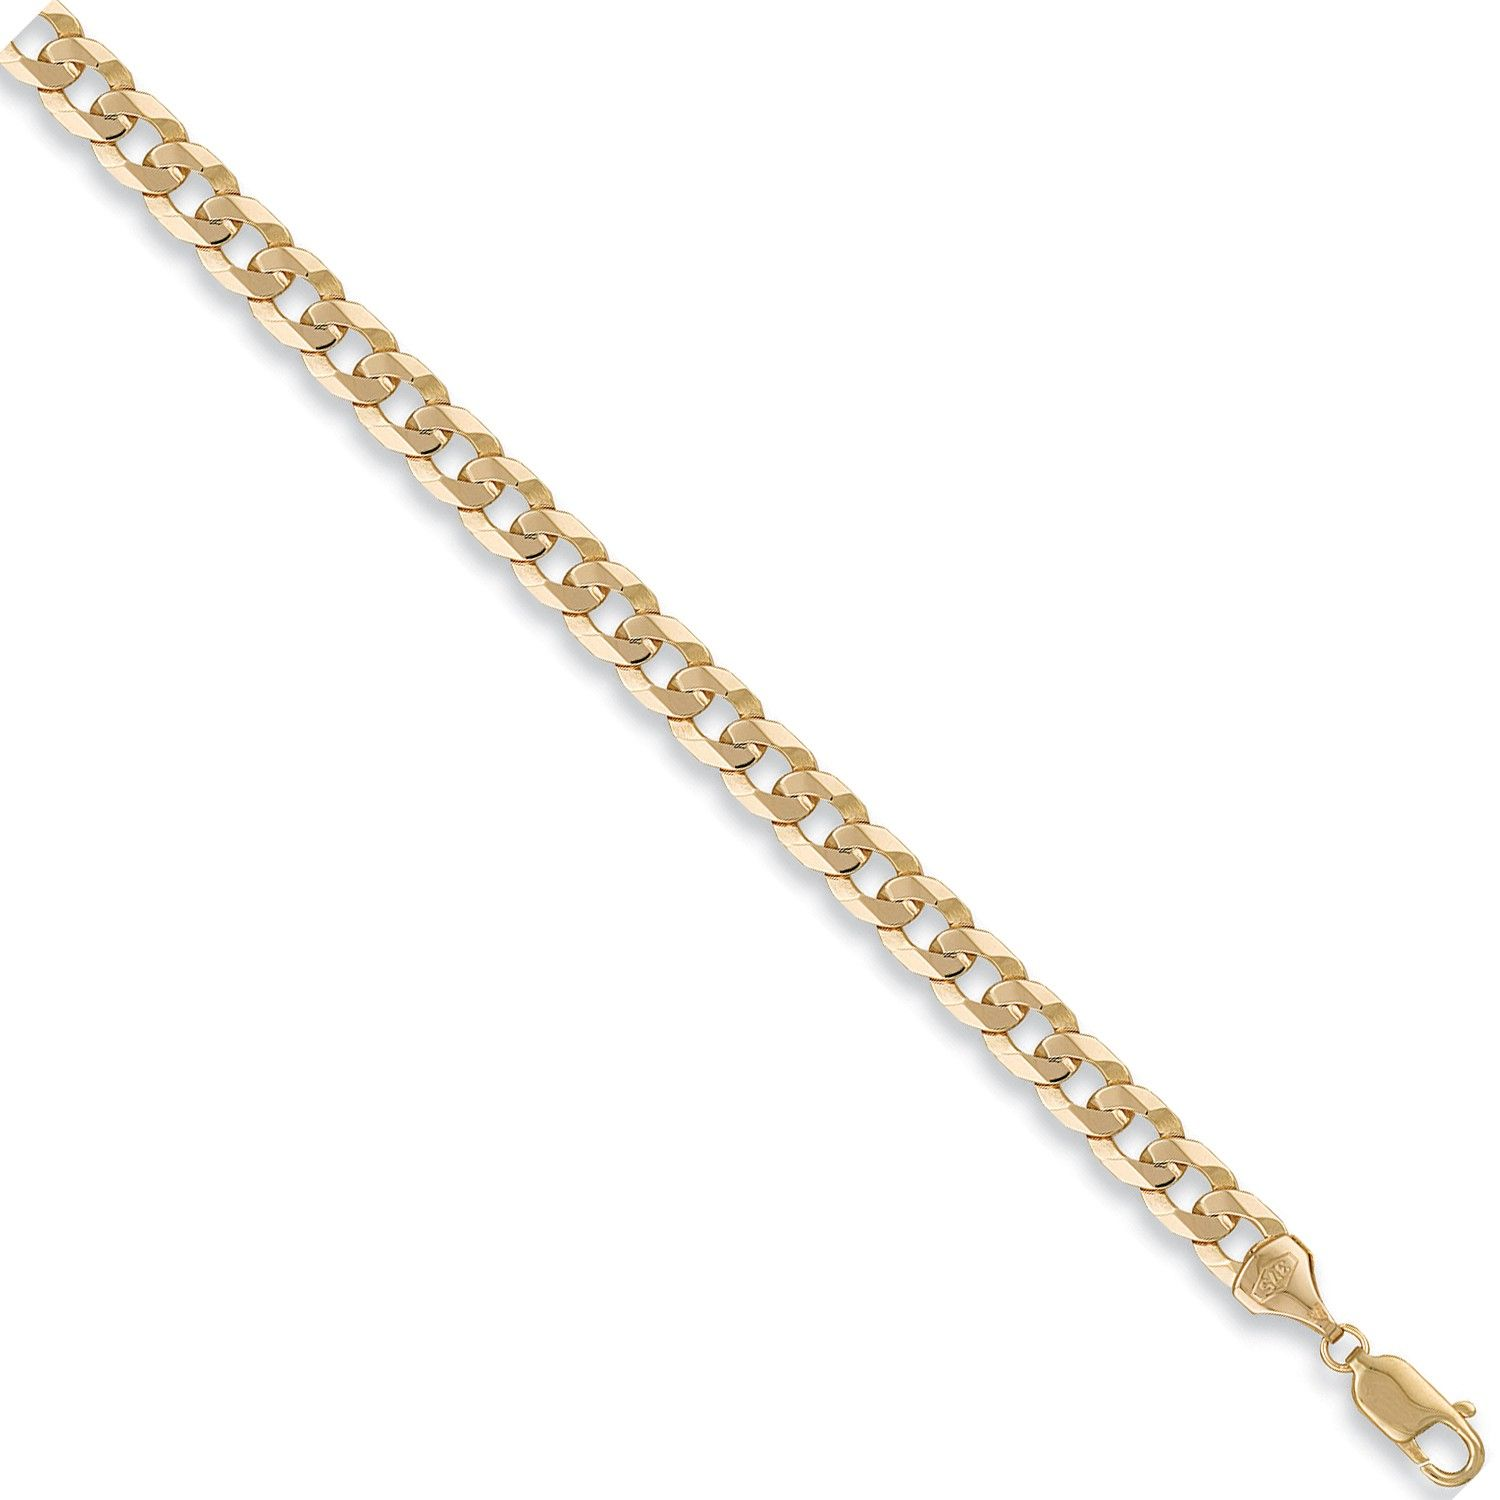 9ct Yellow Gold 7.5mm Curb Chain